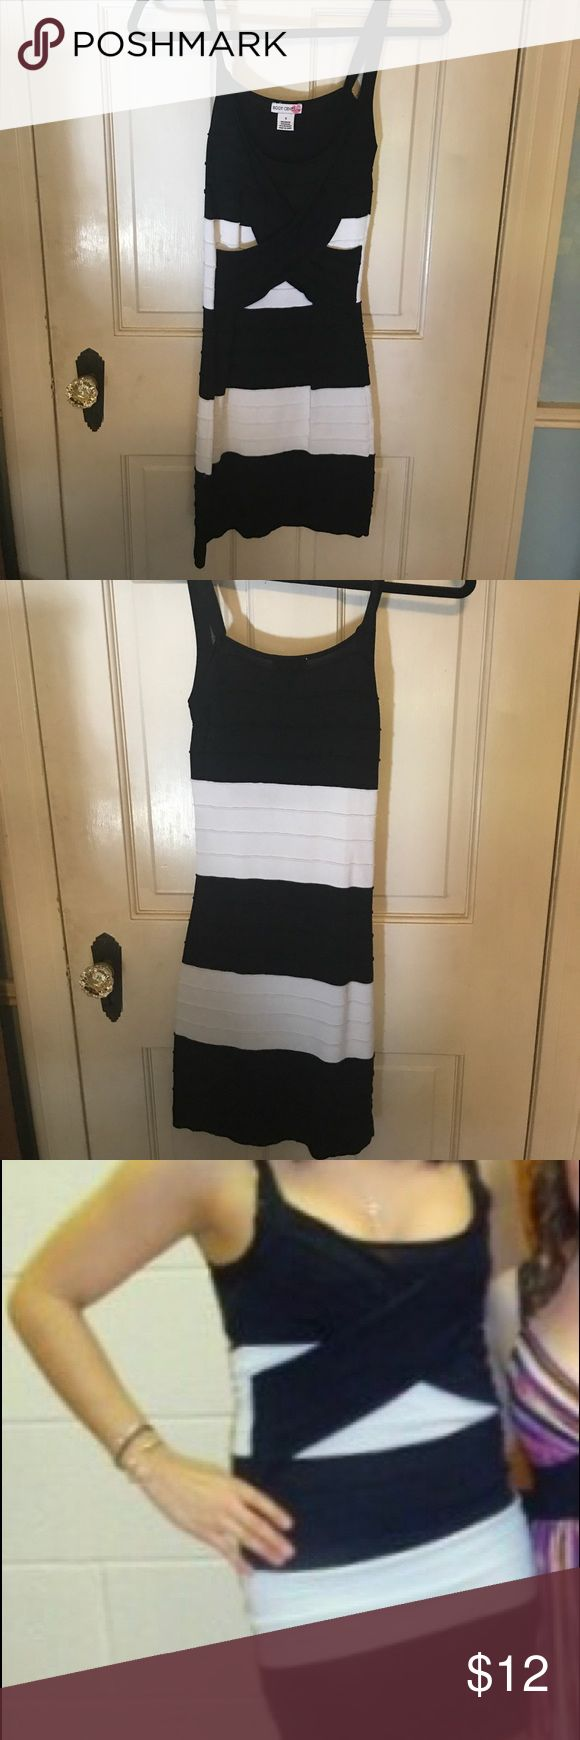 Black and white, bodycon dress Black and white, bodycon dress with a cross front detail Body Central Dresses Mini